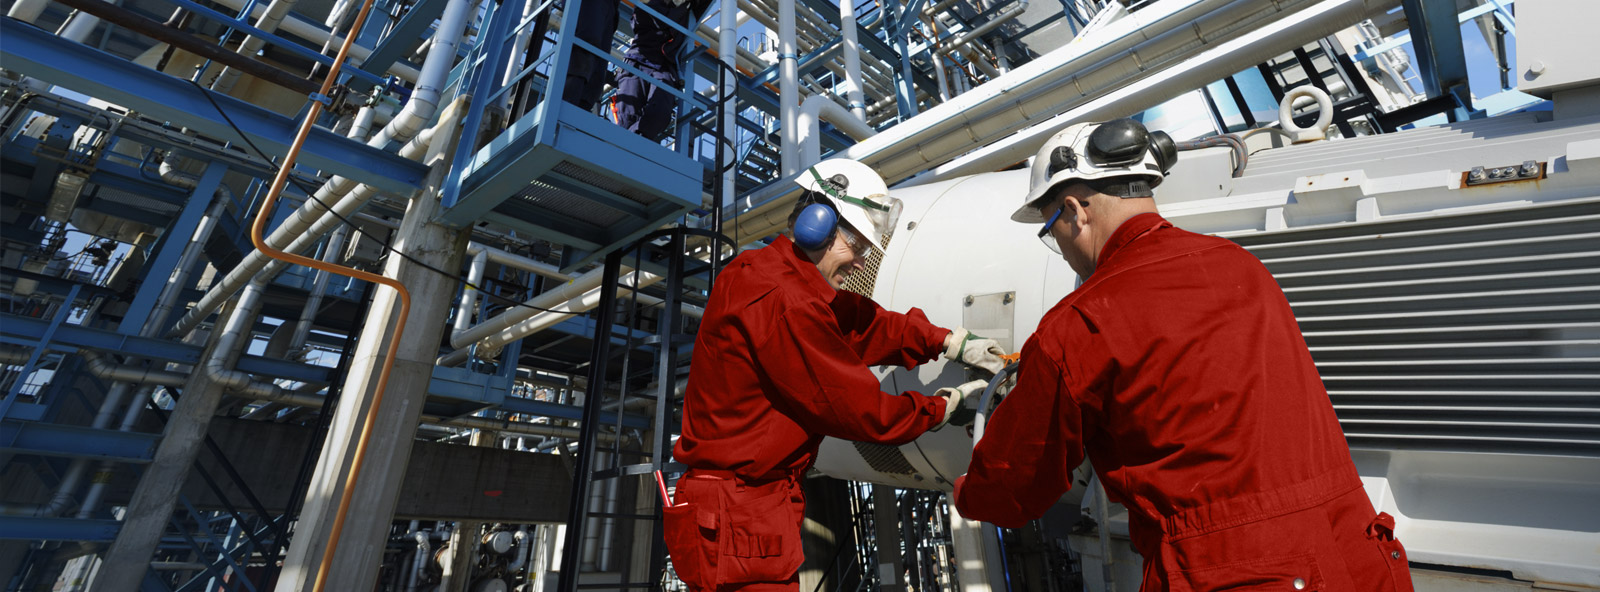 offshore hookup and commissioning process Fundamentals of subsea hook up and field commissioning – pipeline case study this online course gives an overview of fundamentals of subsea hook up and field commissioning using pipeline as a case study.